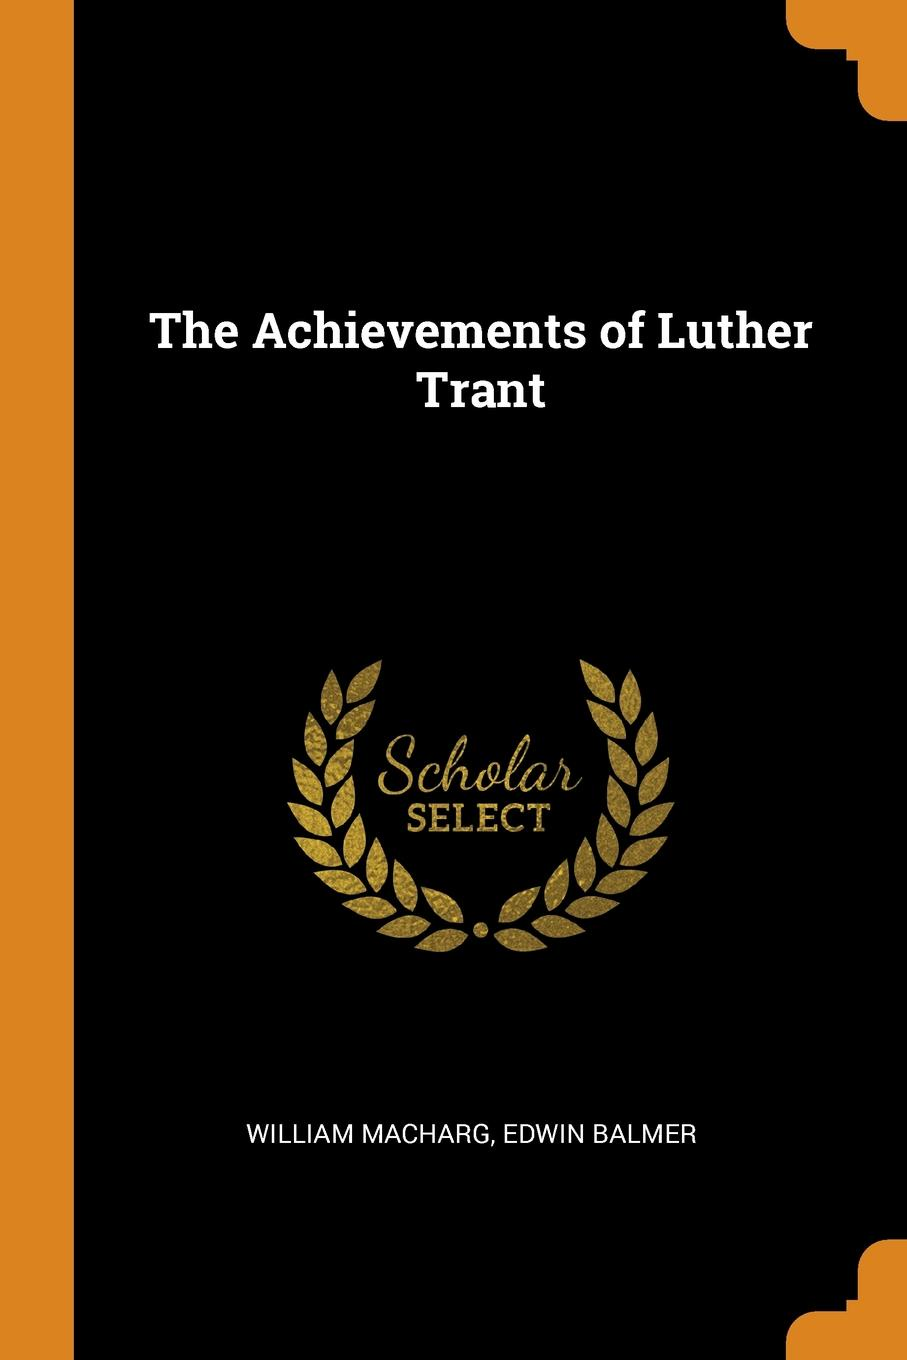 The Achievements of Luther Trant. William MacHarg, Edwin Balmer